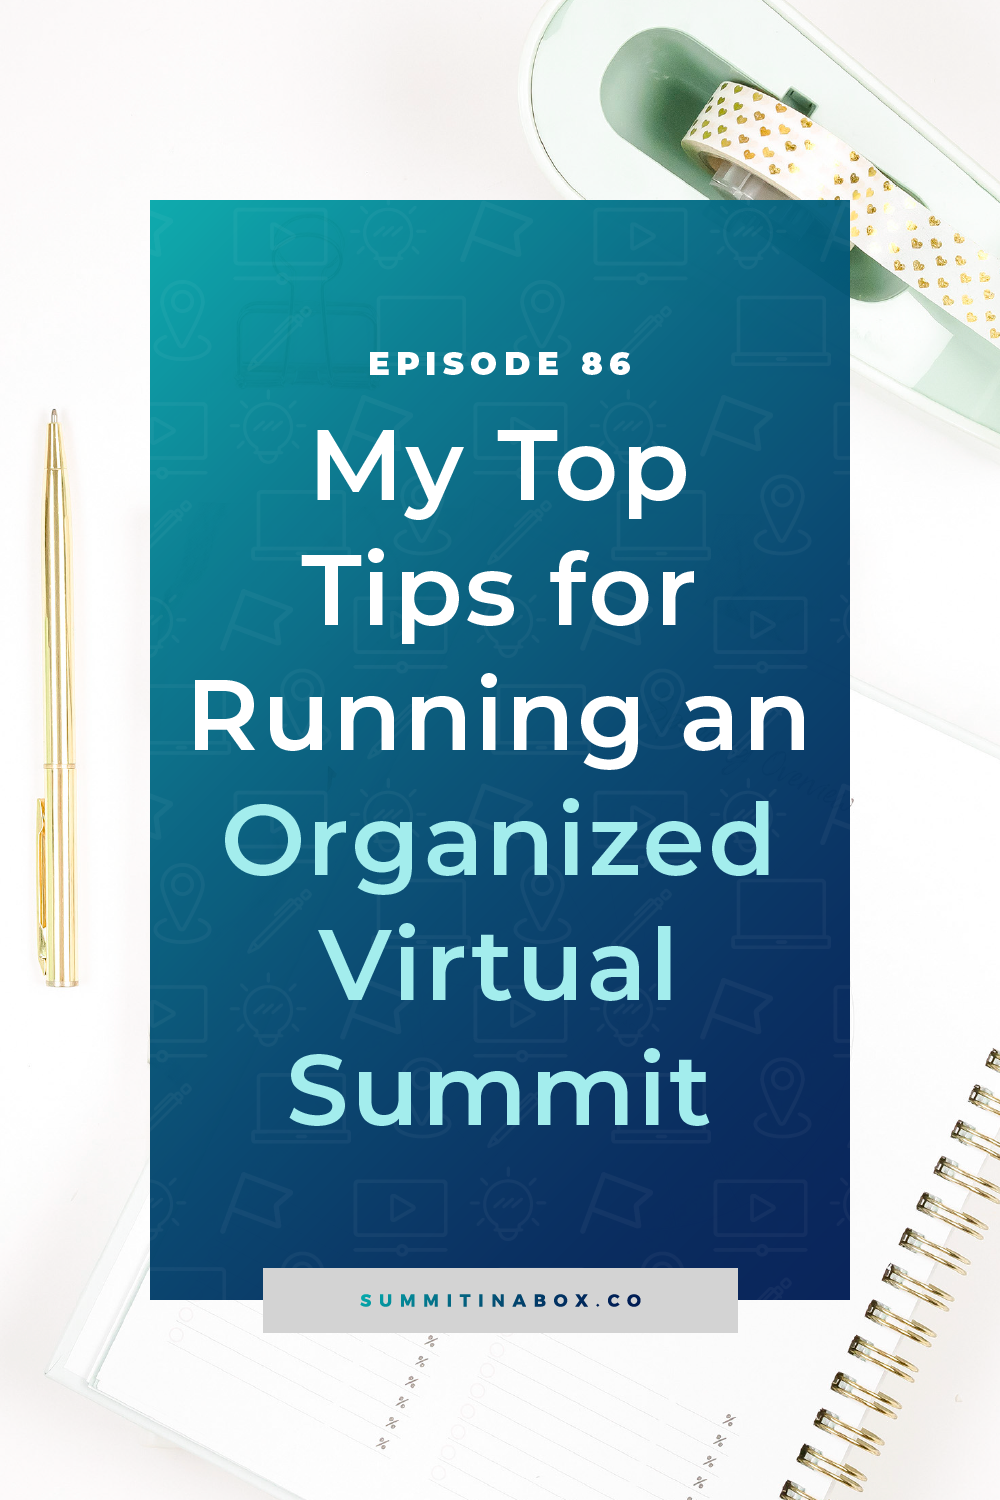 If you aren't organized with your event prep, it is going to turn into a massive headache. Let's cover my top tips for running an organized virtual summit.